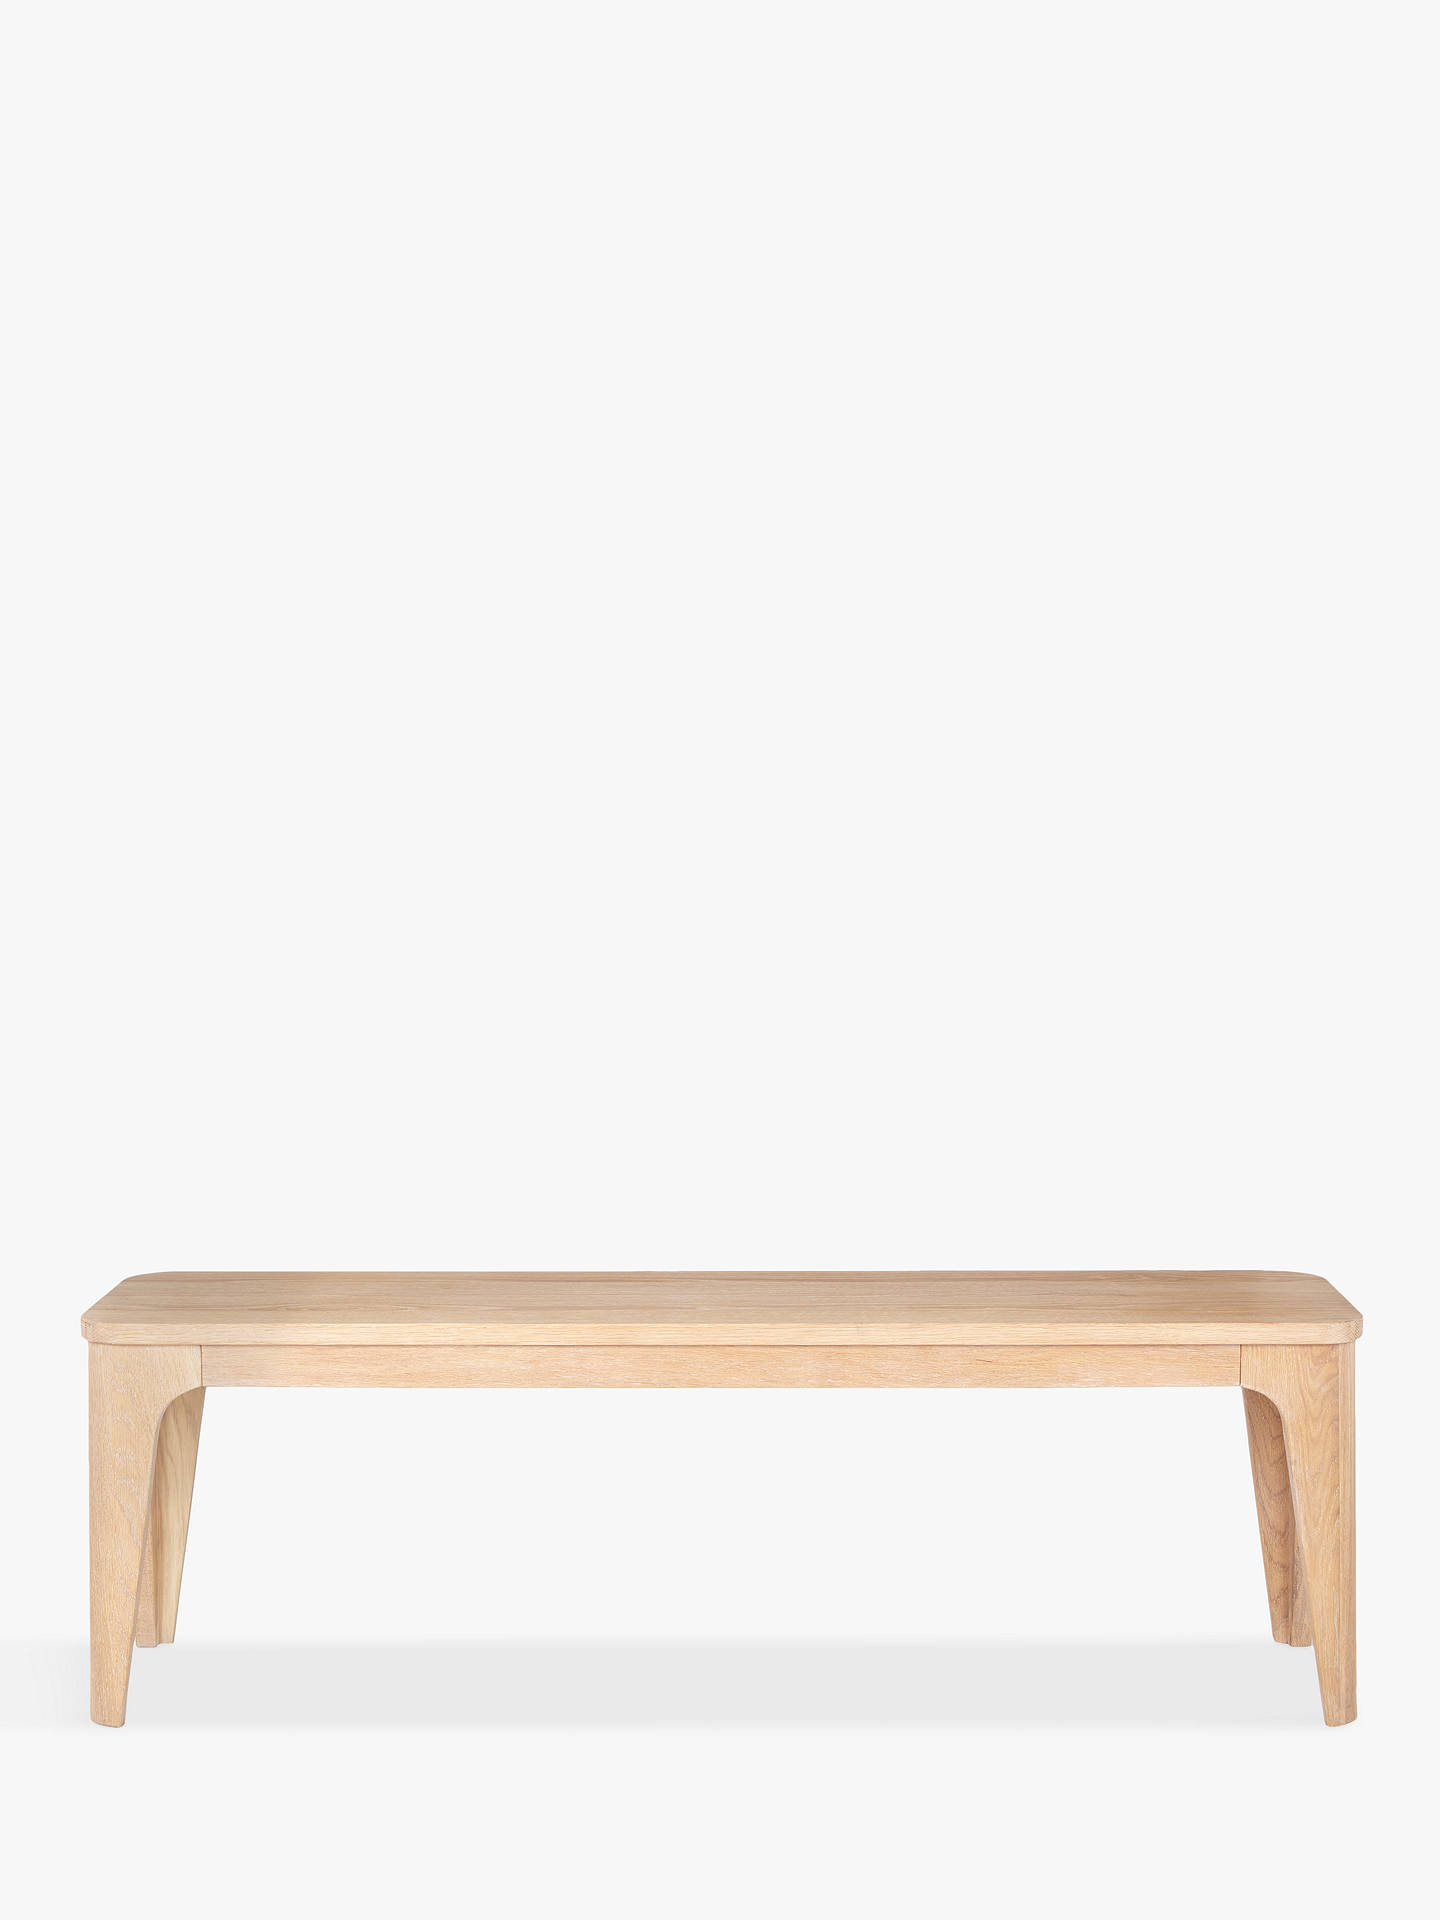 88c4a473e70f ... Buy Ebbe Gehl for John Lewis Mira 3-Seater Dining Bench, Oak Online at  ...